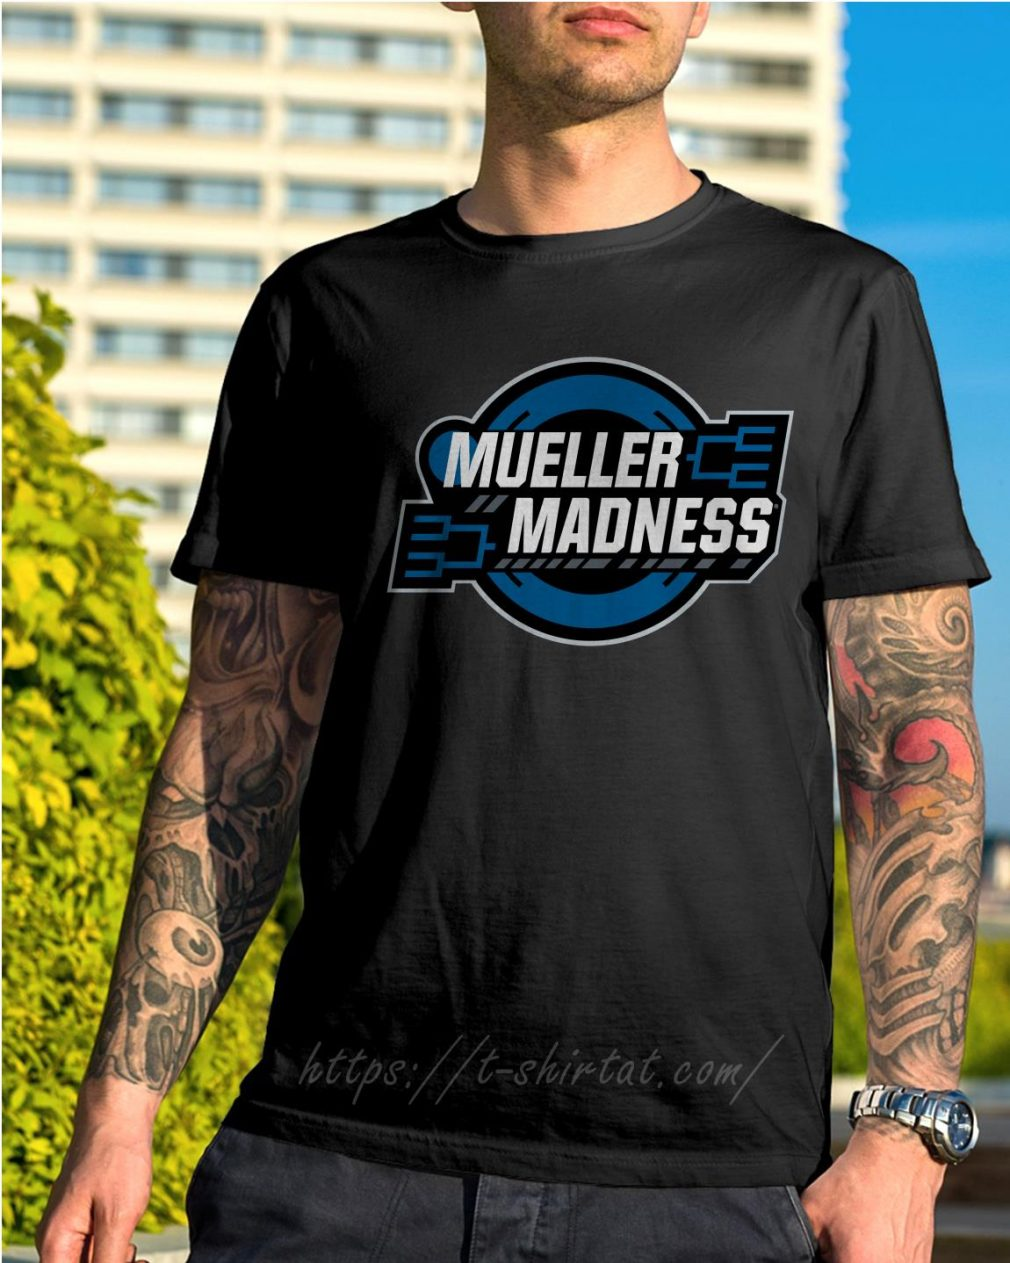 Trump and Mueller Madness Parody shirt